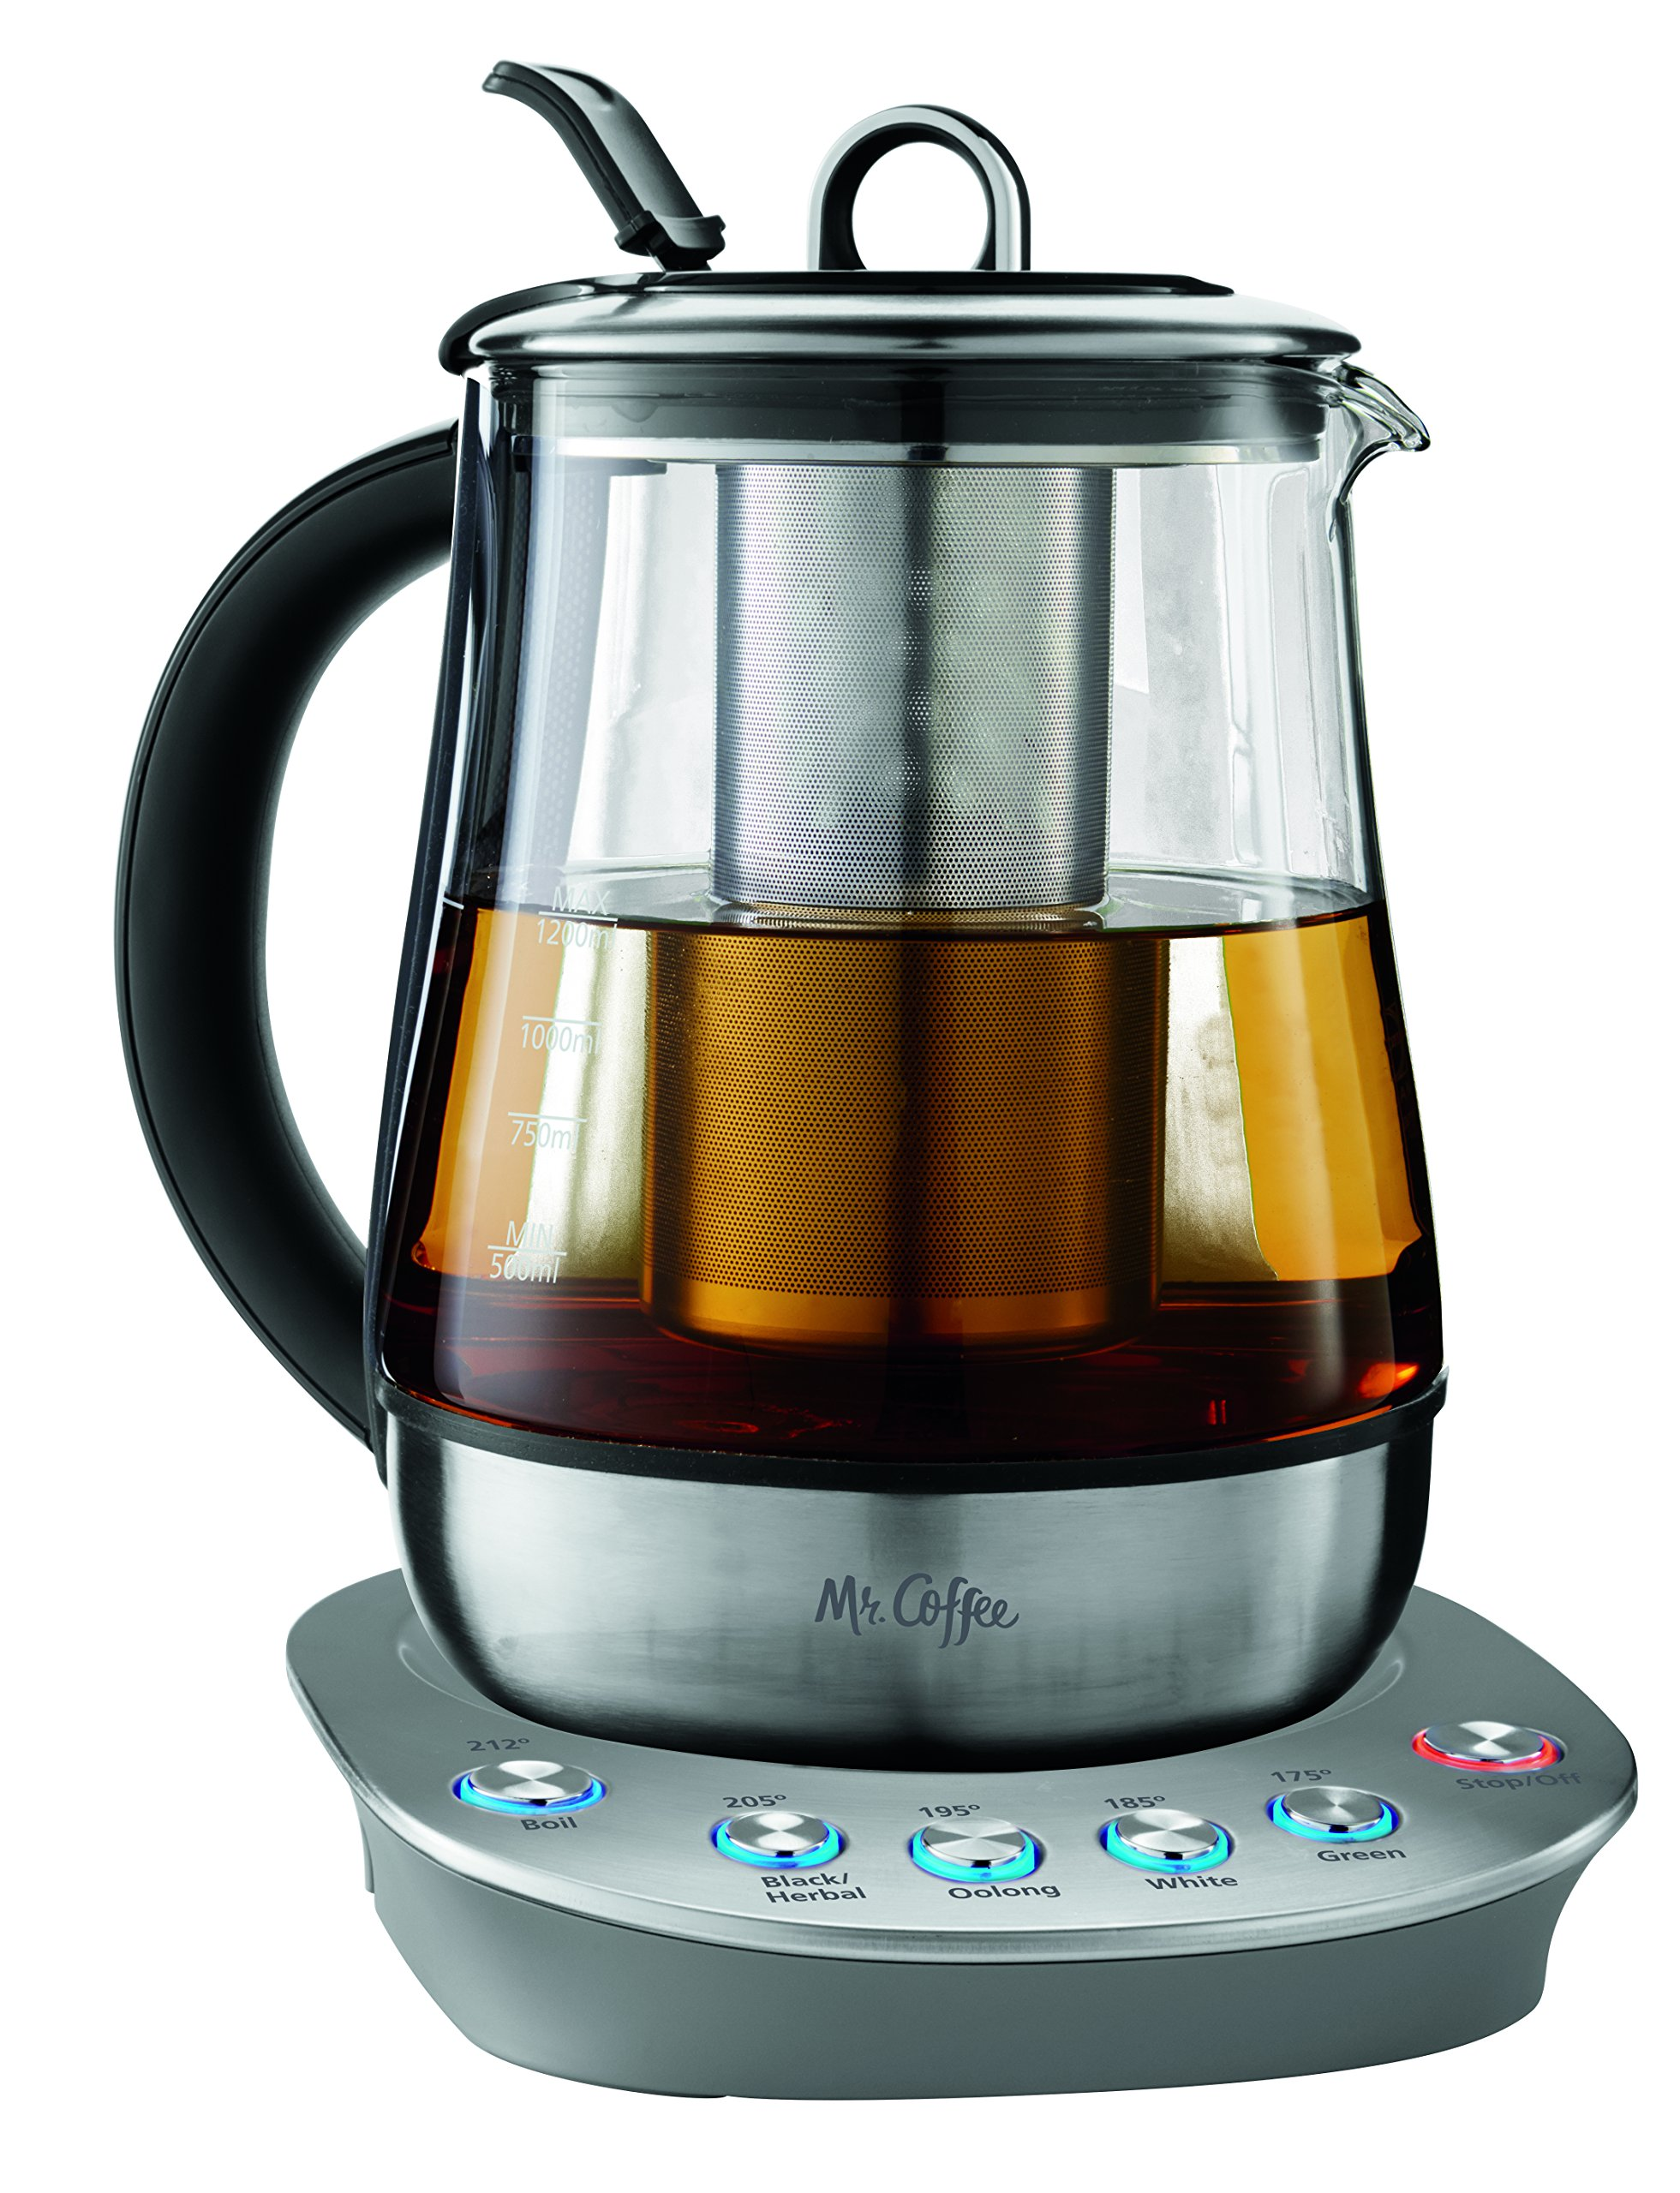 Mr. Coffee BVMC-HTKSS200 Hot Tea Maker and Kettle, Stainless Steel